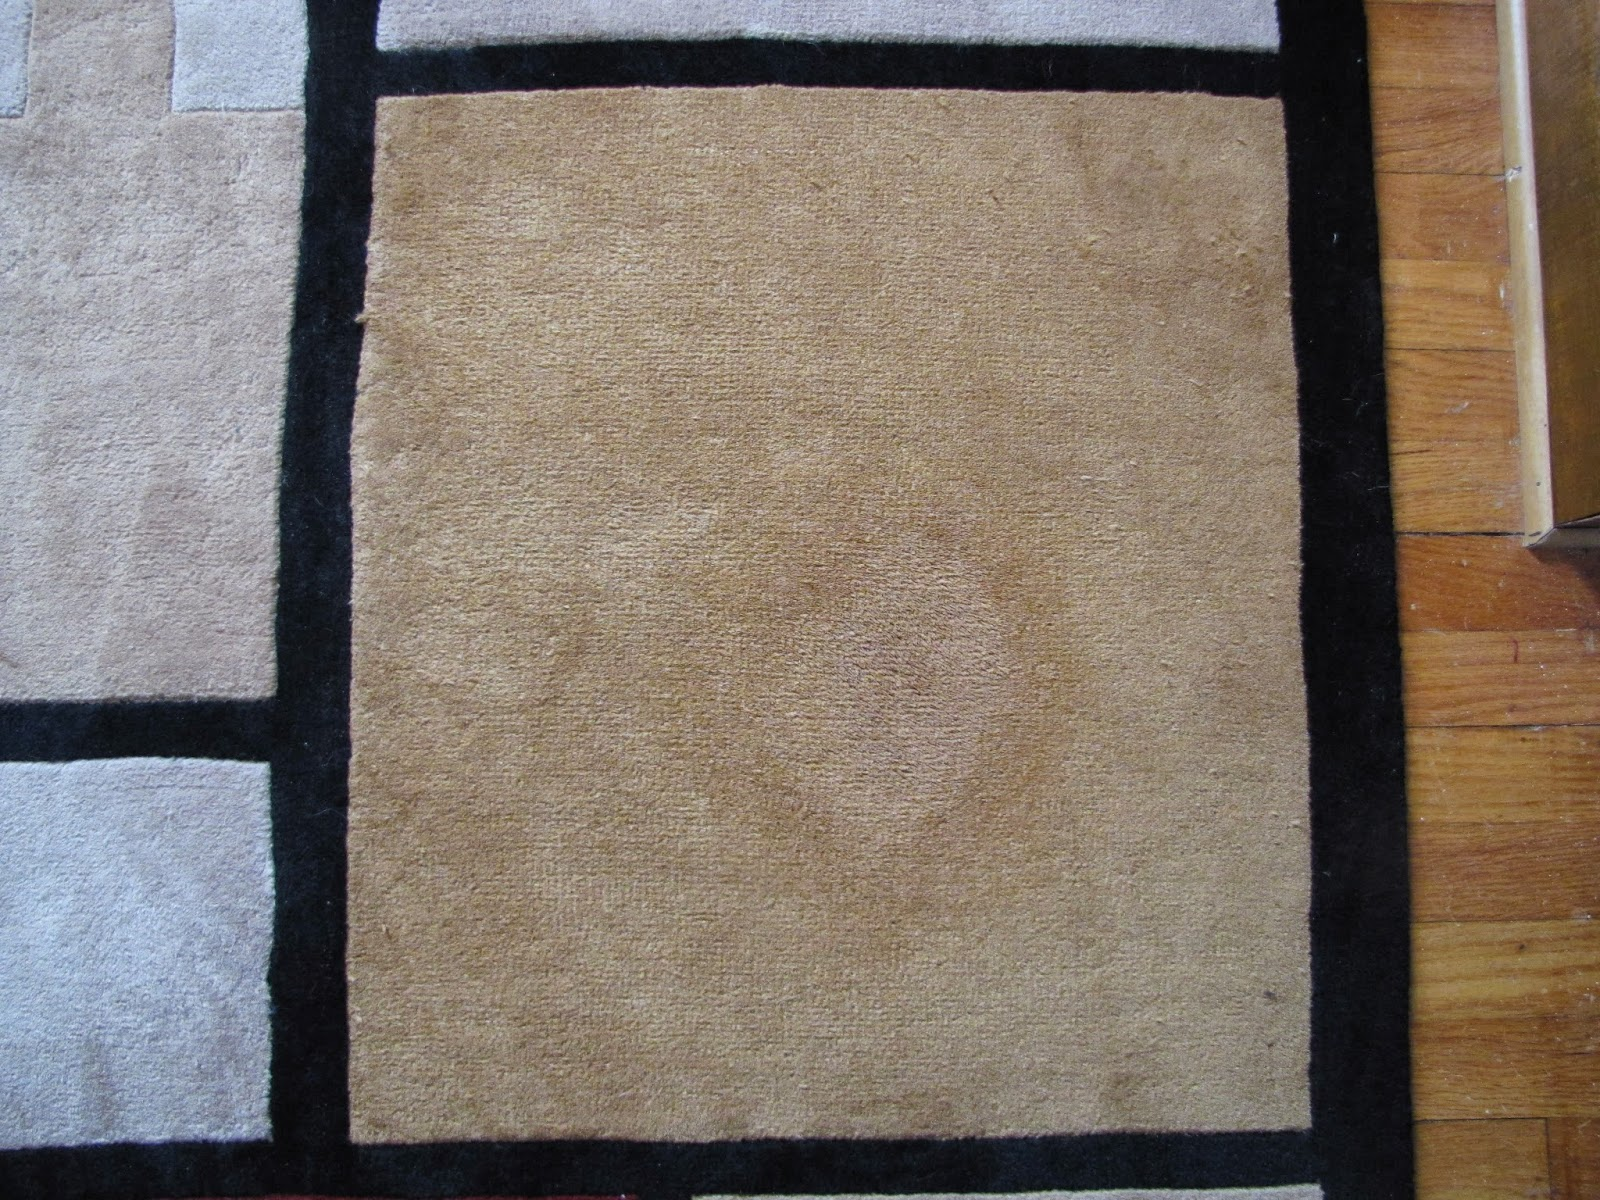 The stain is removed and the carpet is cleaned. The spot that is visible in the photo is not a stain, nor is it discoloration. This is simply the wet area ...